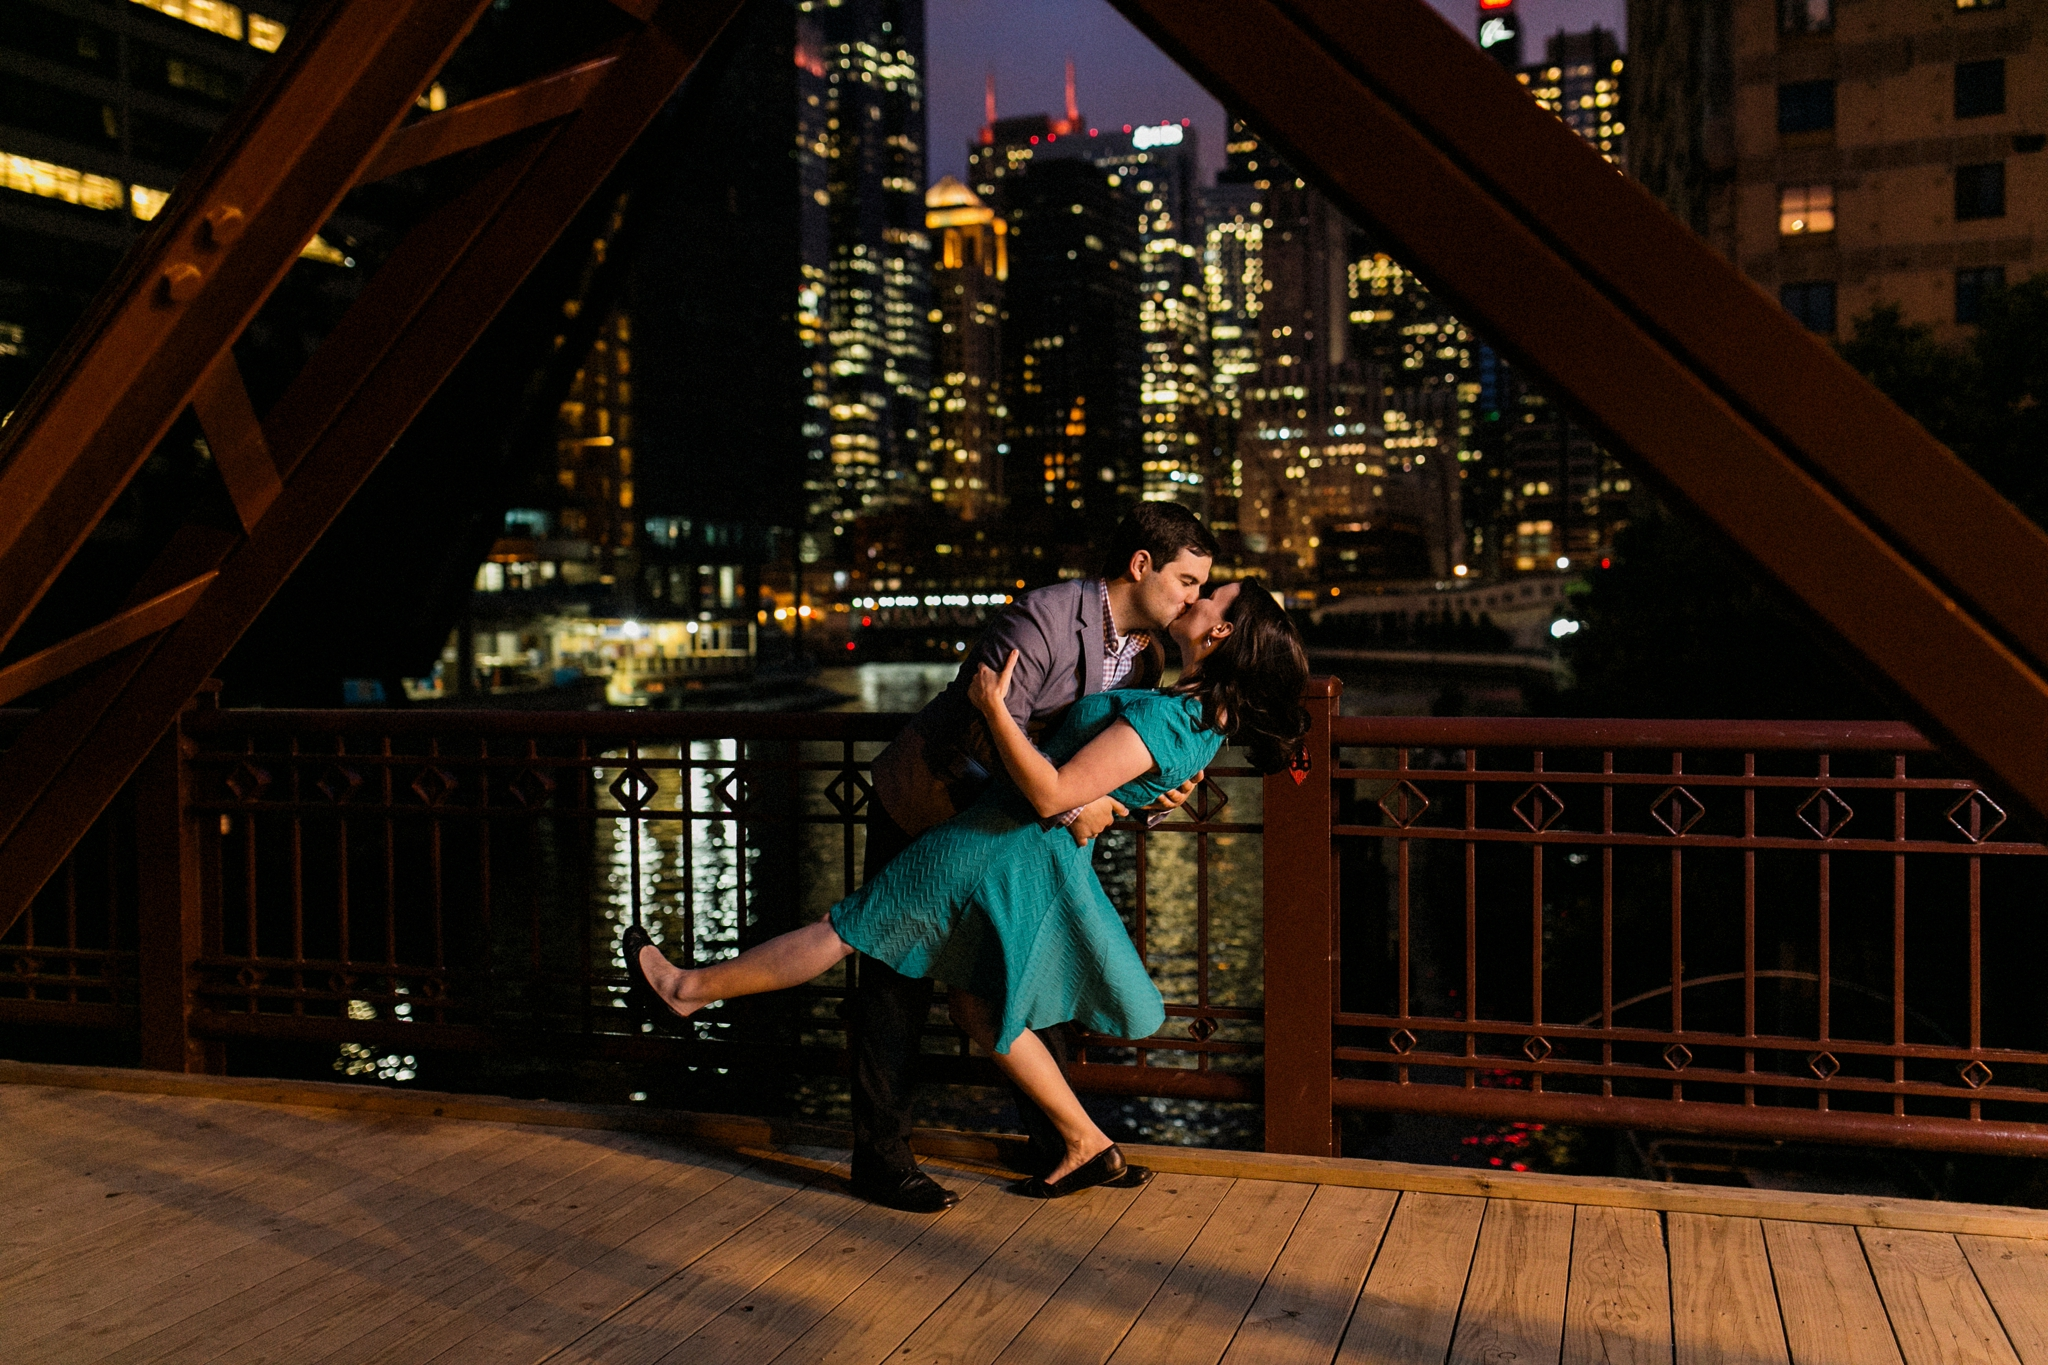 Lincoln_Park_Engagement_Photography-028.jpg